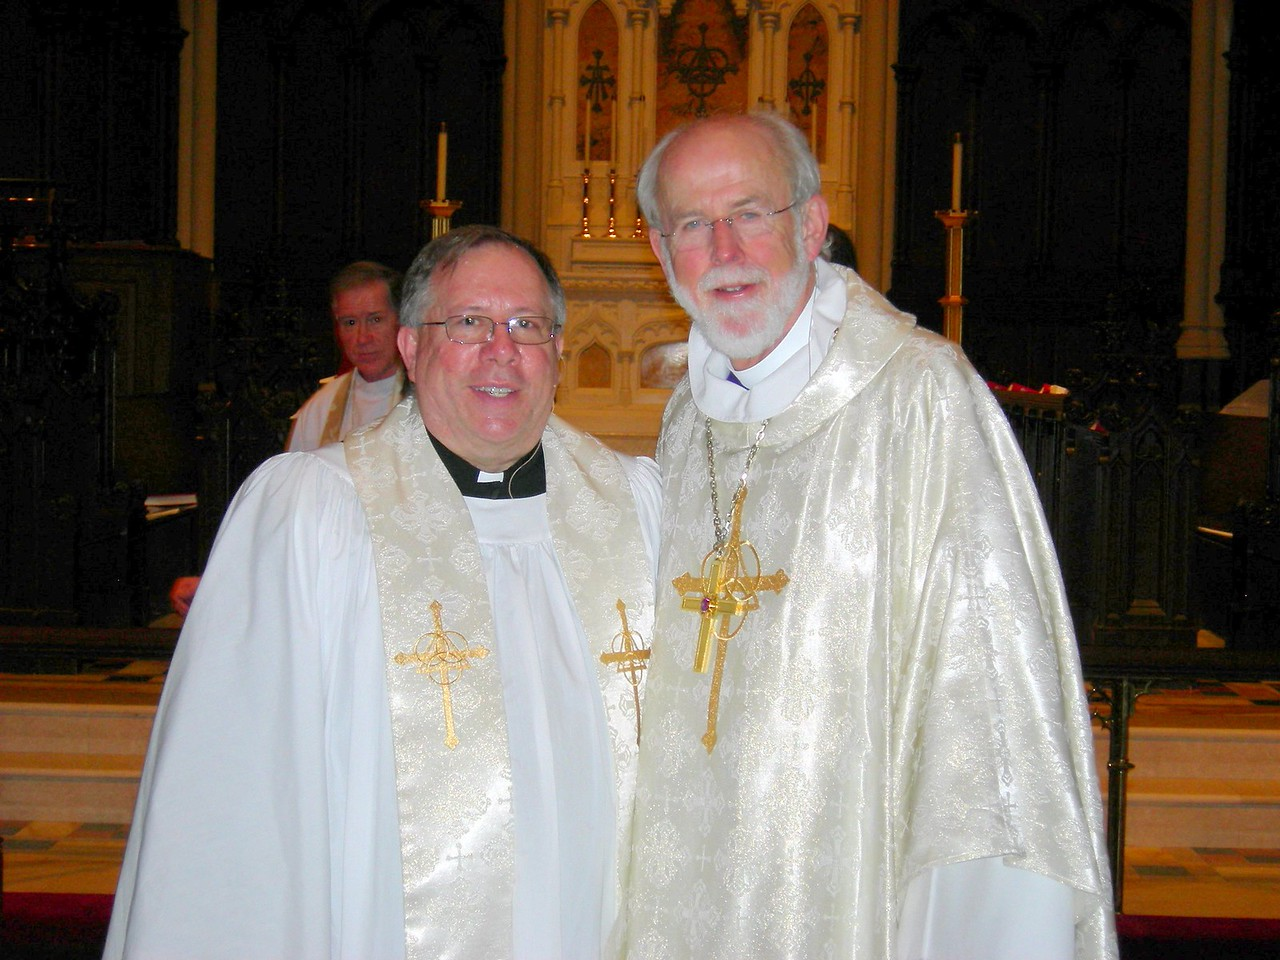 The Rev. Charles D. Bang, left, pastor of Holy Trinity Lutheran Church, Buffalo, N.Y. with Presiding Bishop Mark S. Hanson of the Evangelical Lutheran Church in America.